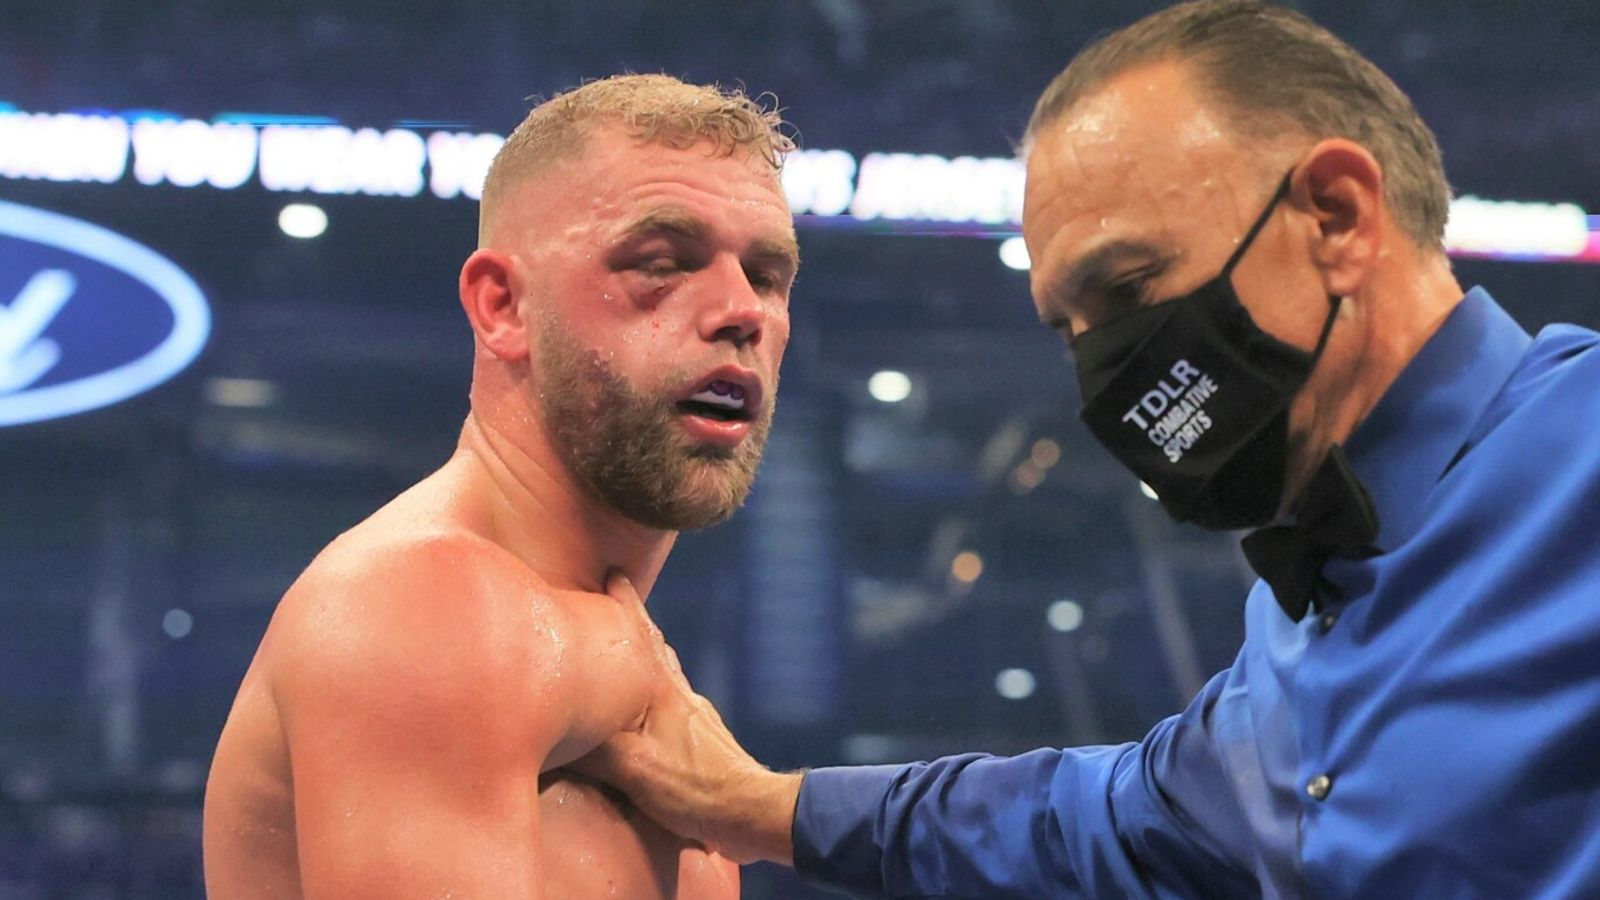 Billy Joe Saunders: Boxer plans to return after suffering broken eye socket